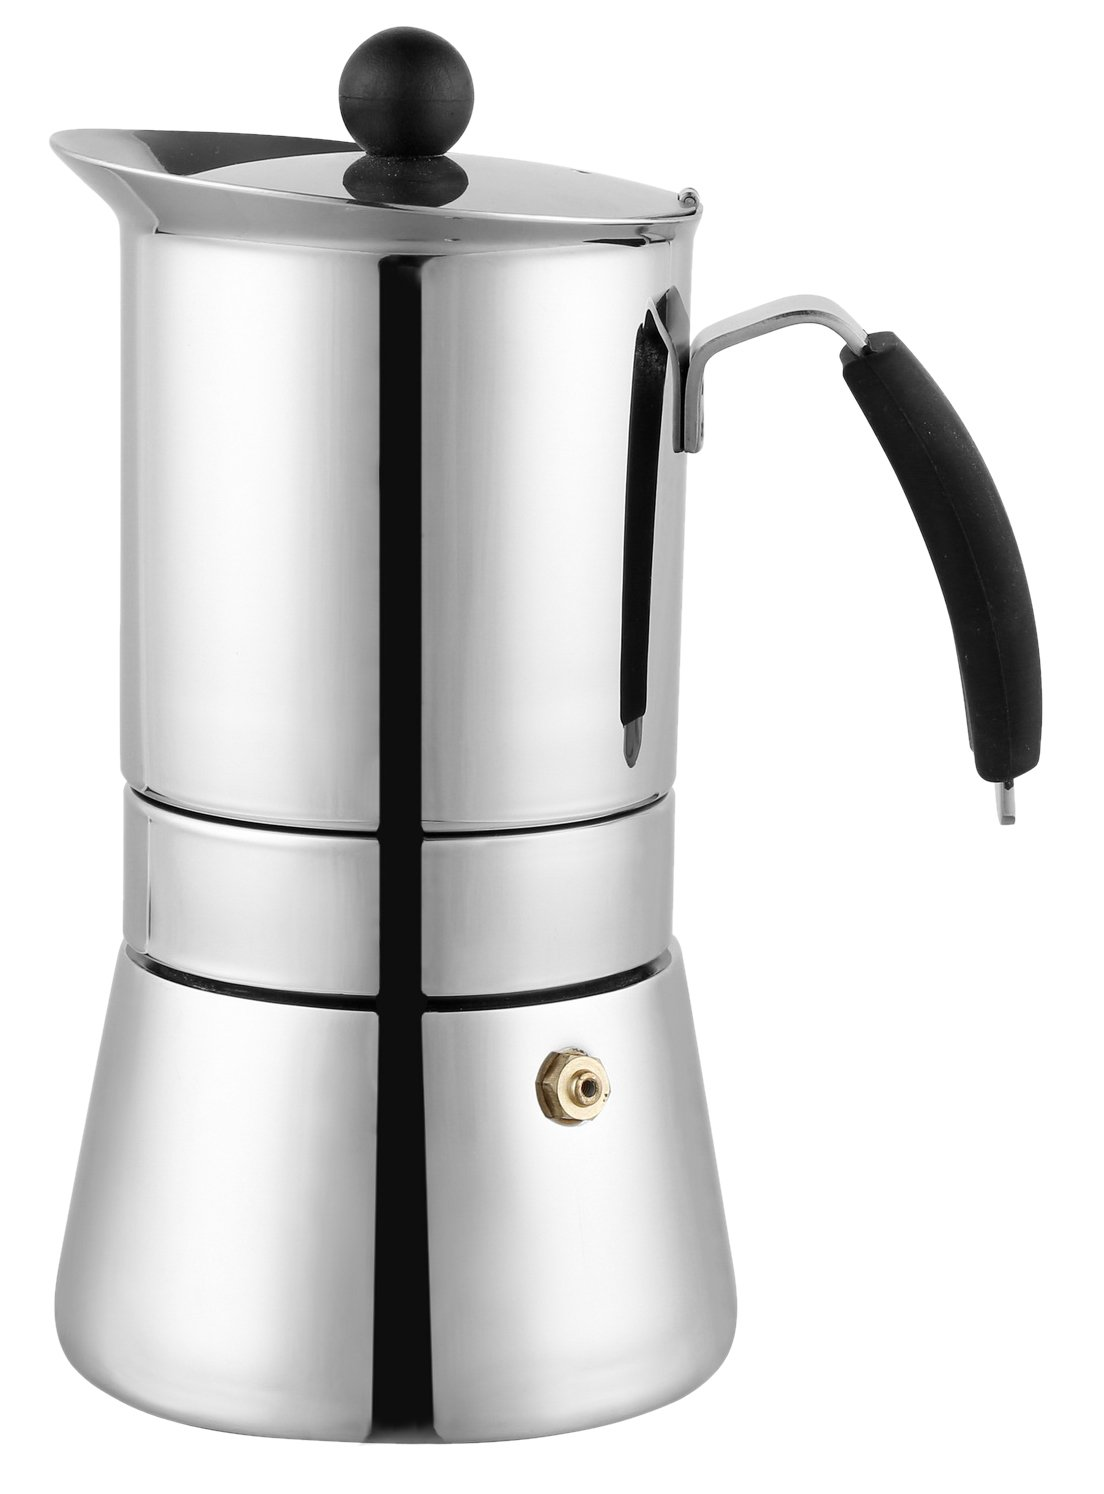 Cuisinox 9 cup Amore Espresso Coffeemaker in Stainless Steel